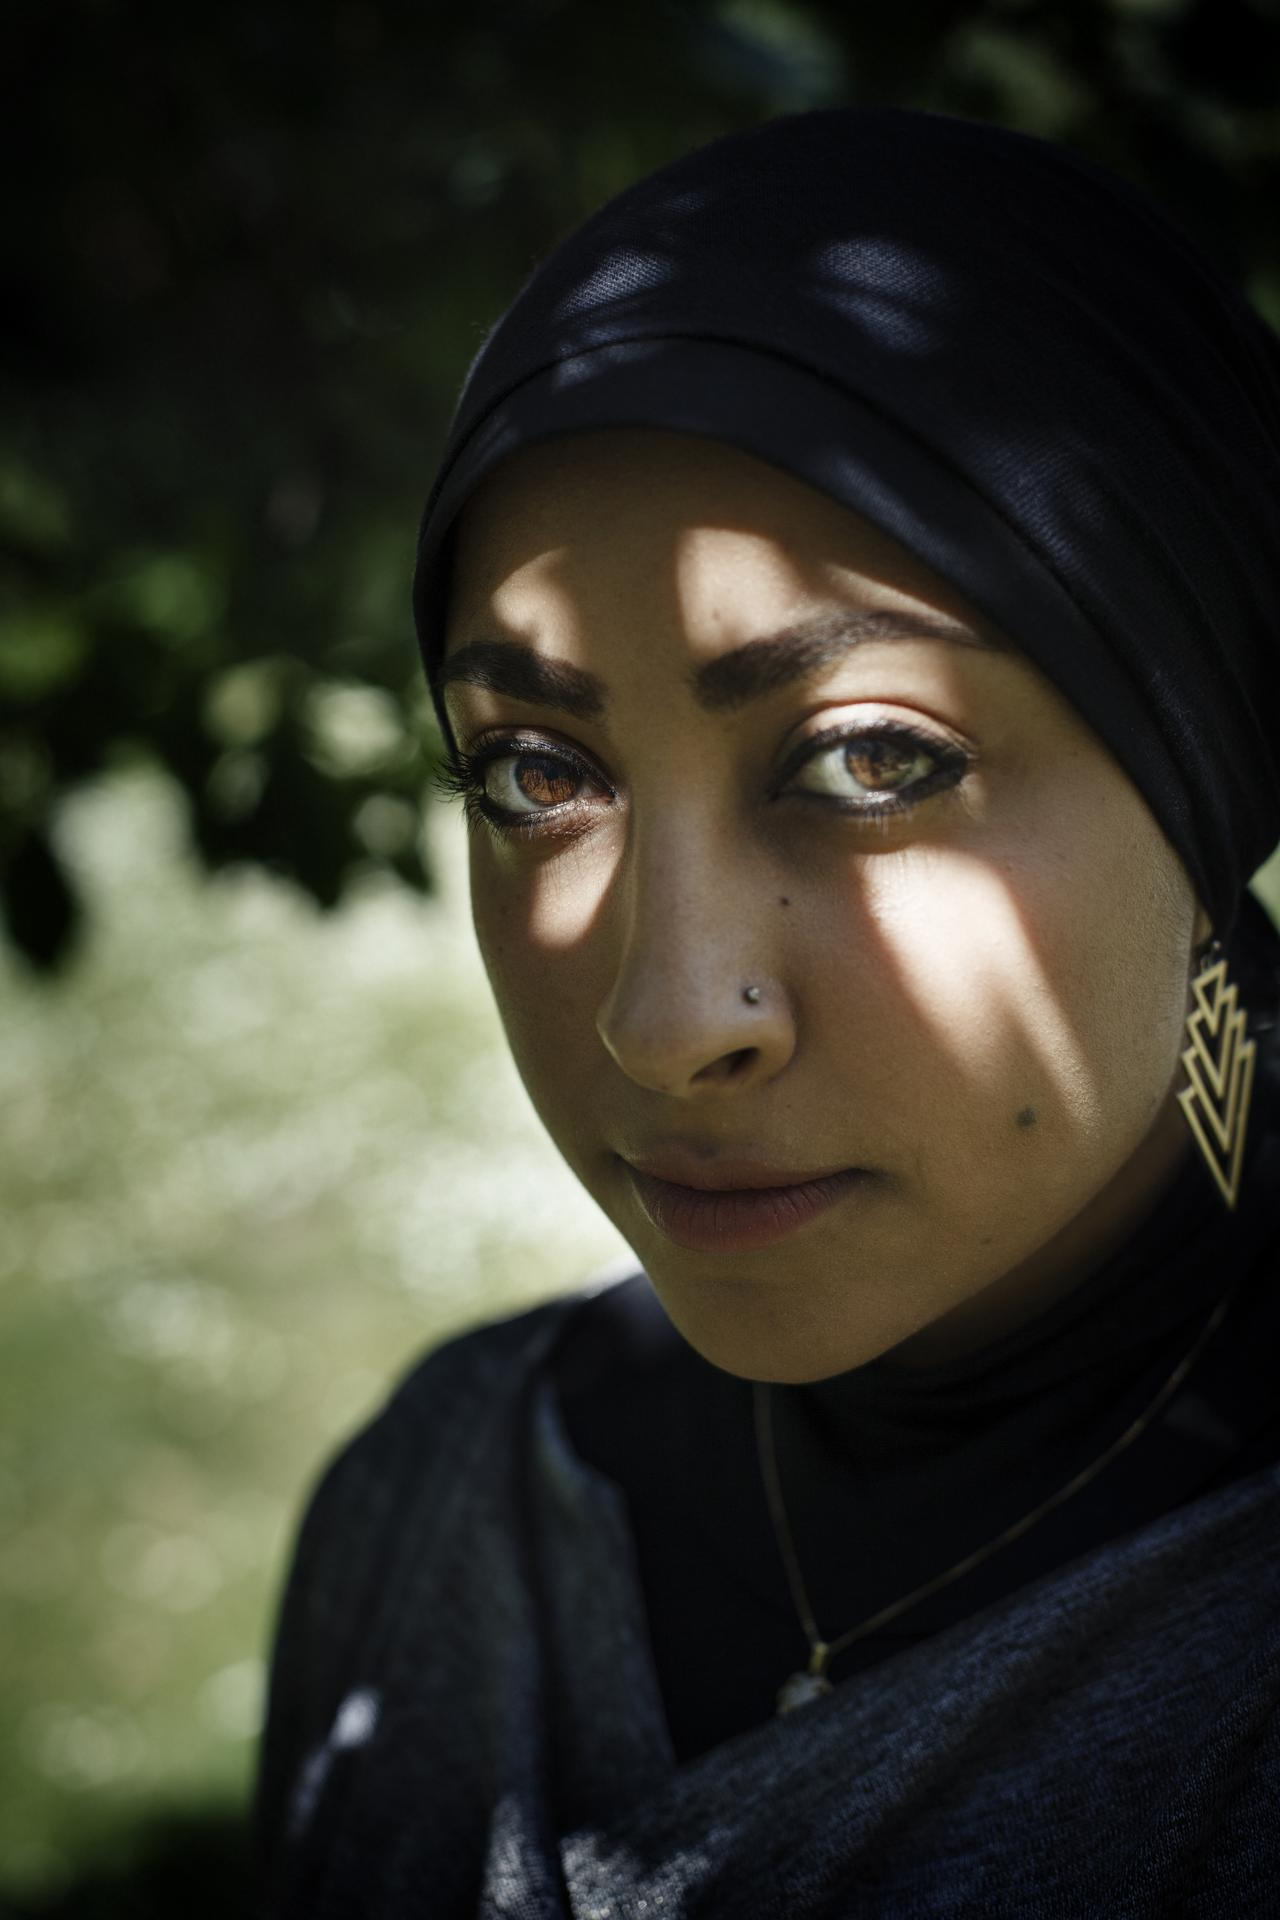 Maryam Al-Khawaja in Copenhagen, June 2014. (Photo by Ditte Lysgaard Holm)